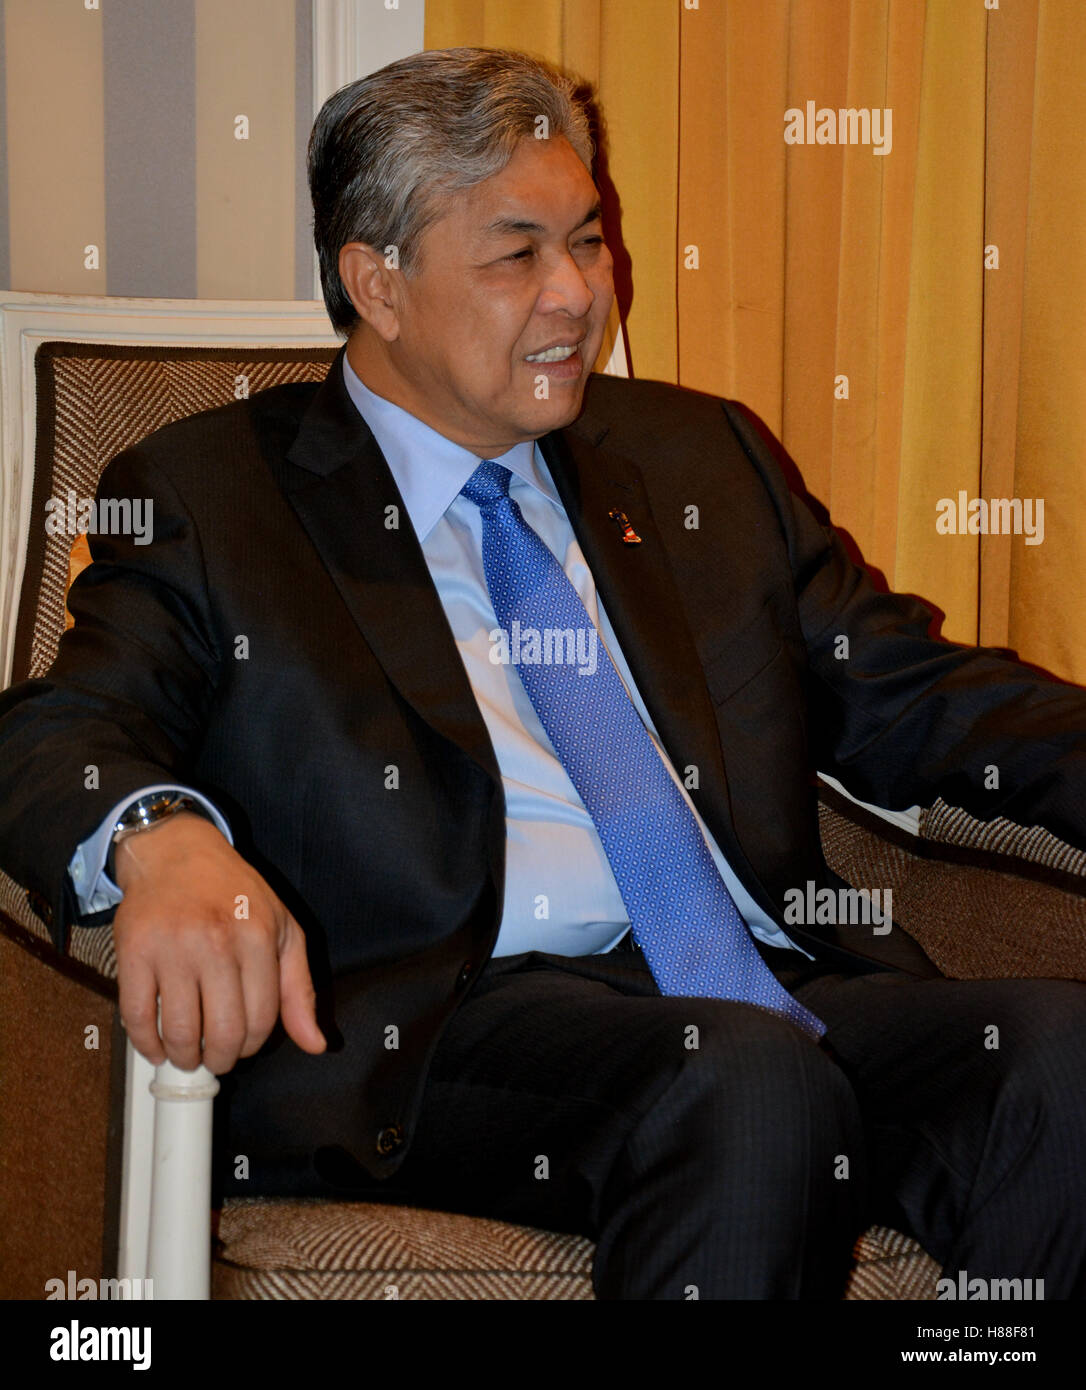 NEW YORK, UNITED STATES - AUGUST 24TH, 2016. Ahmad Zahid Hamidi, a Malaysian politician who has been Deputy Prime Stock Photo